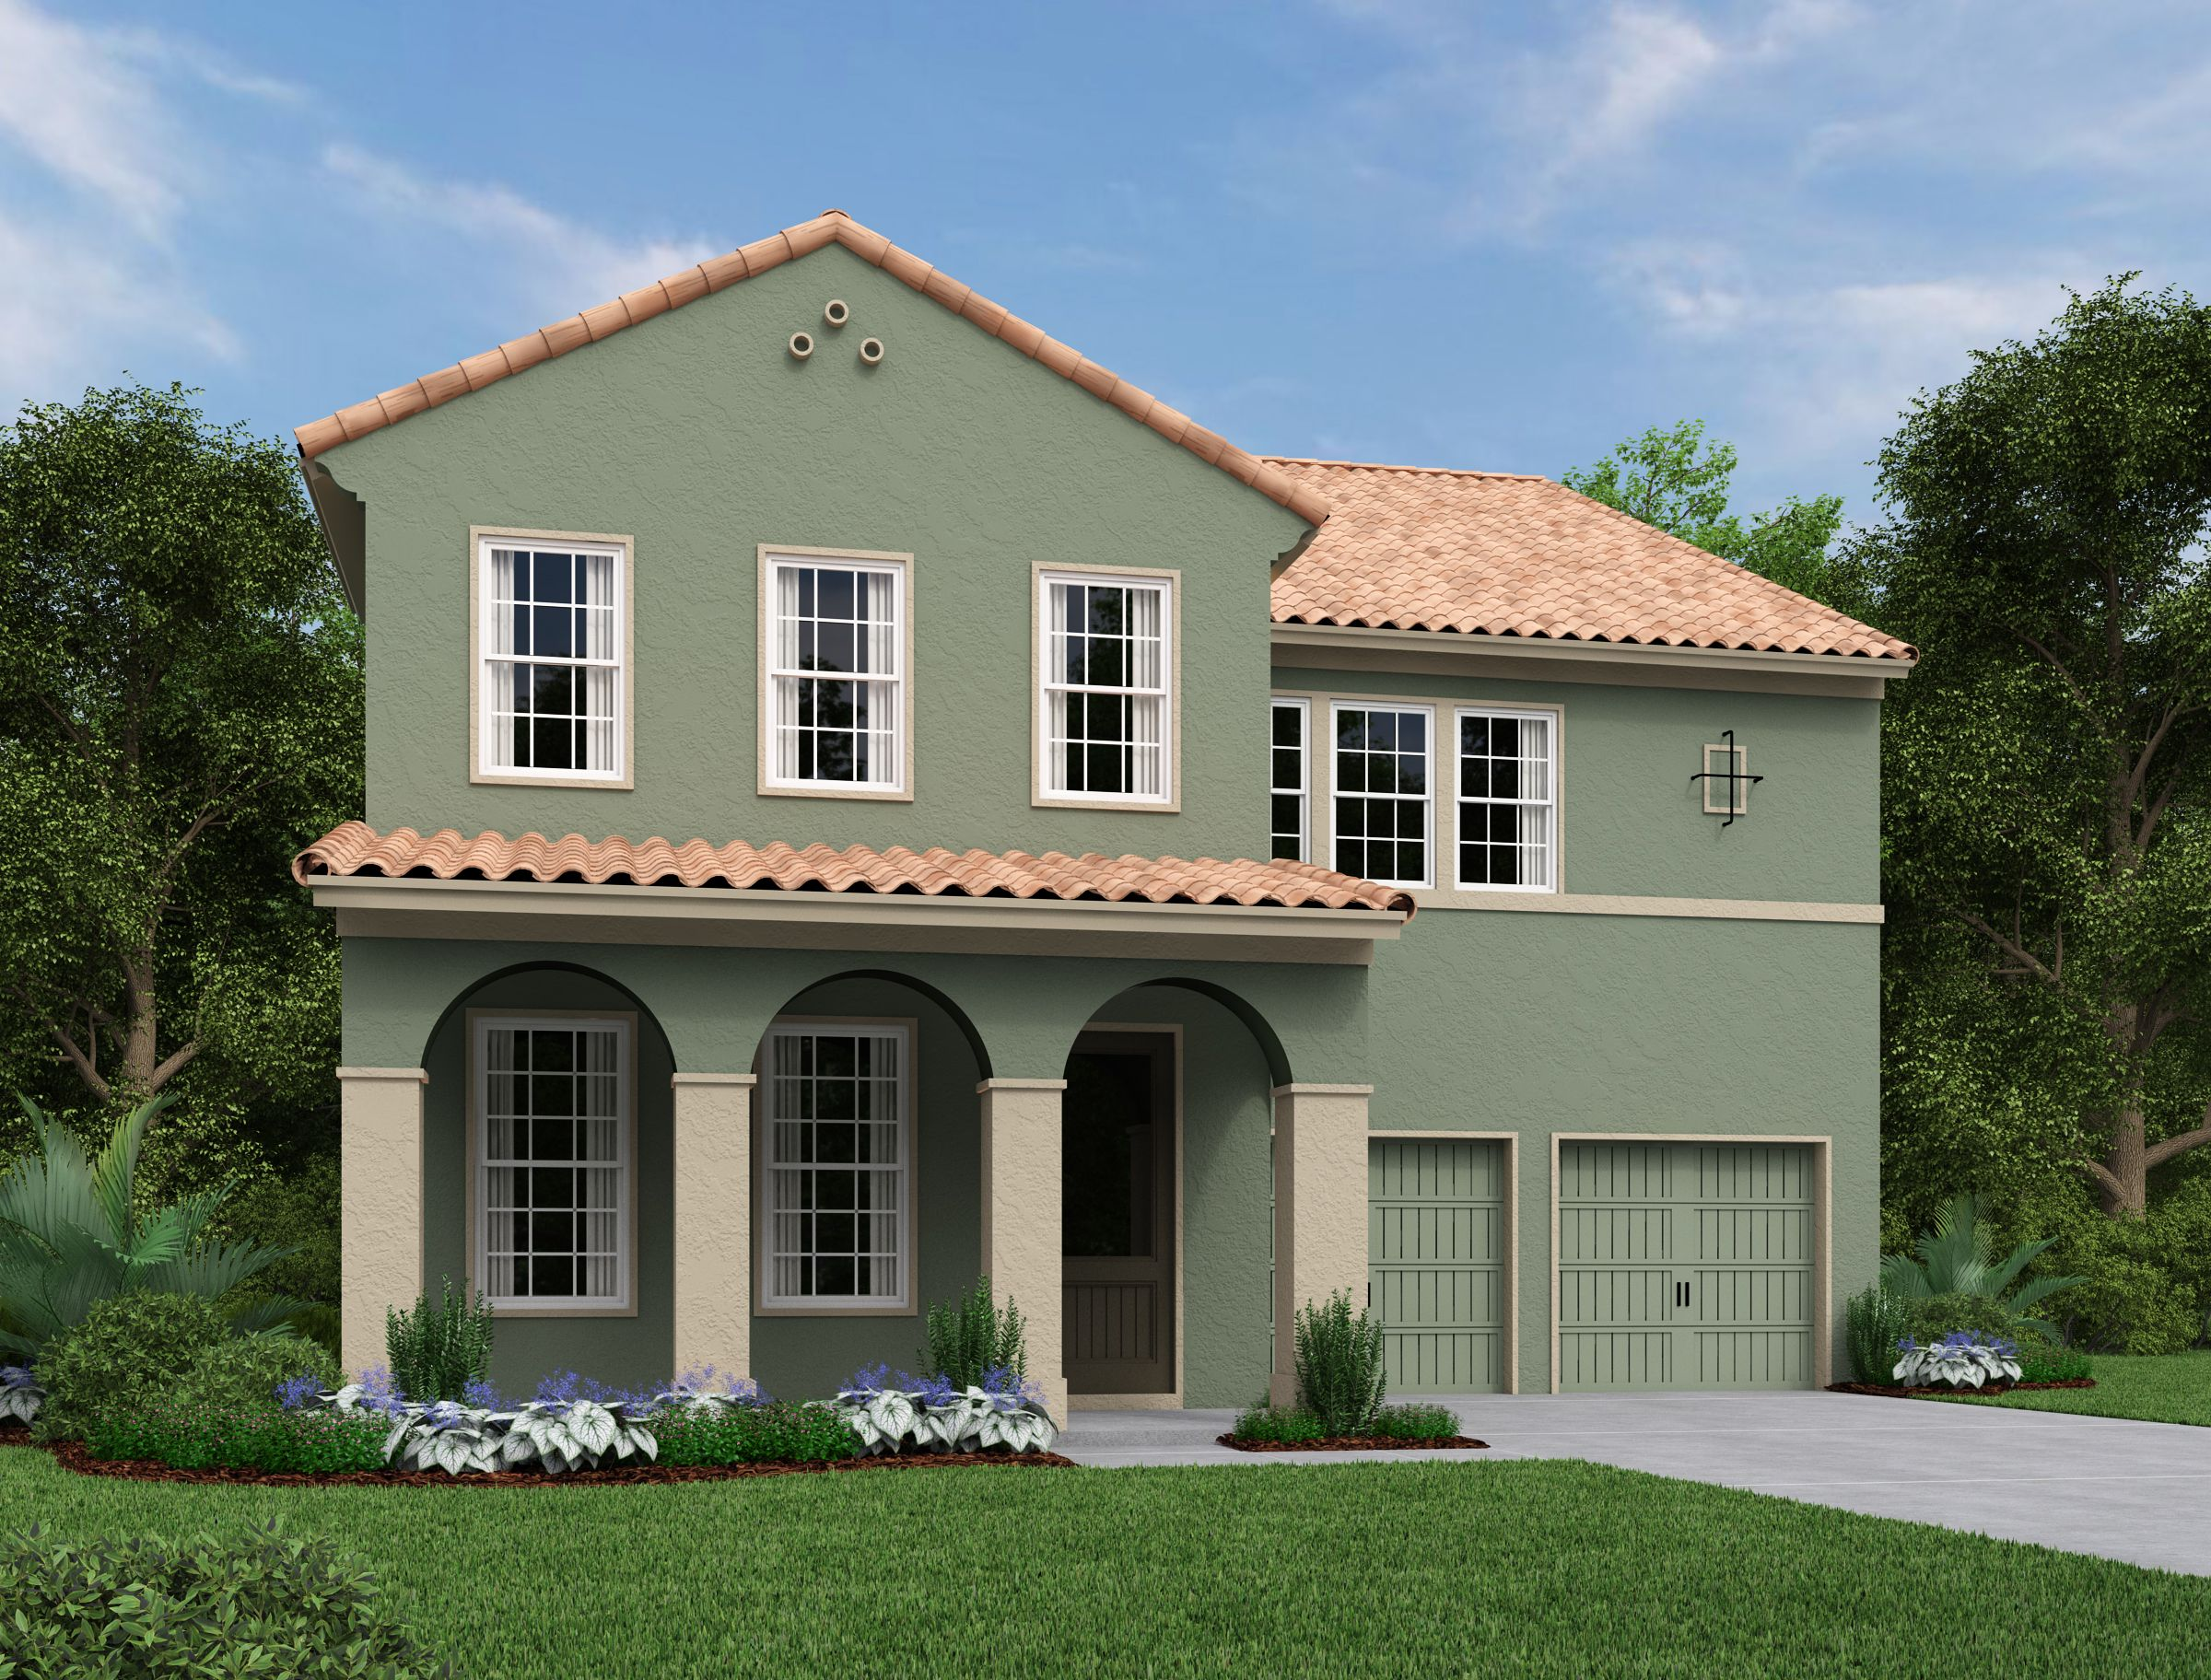 Single Family for Sale at Estates At Sweetwater Country Club Traditional - Carlisle Apopka, Florida 32712 United States